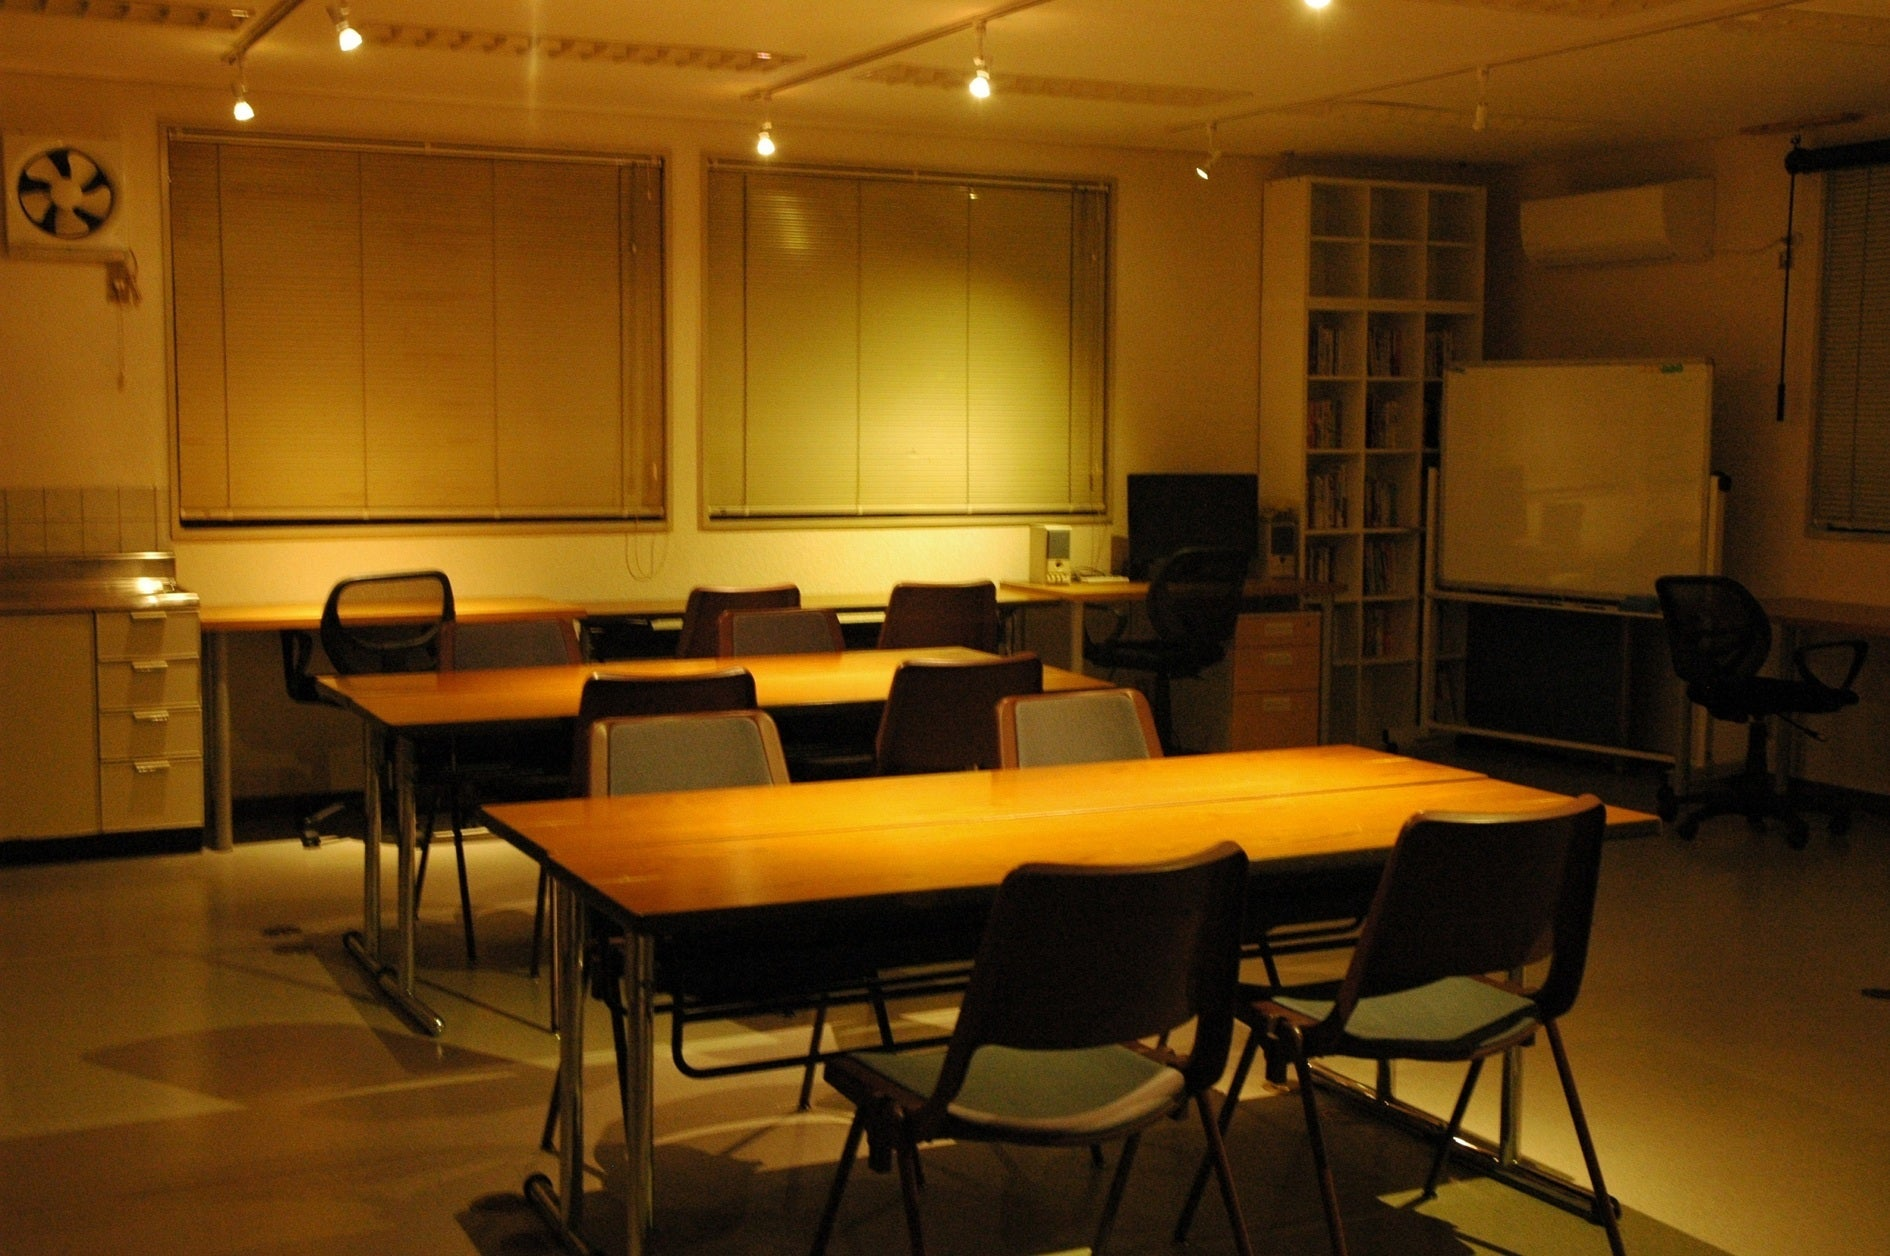 Innovative Coworking Space ラボこうふ(Innovative Coworking Space ラボこうふ) の写真0